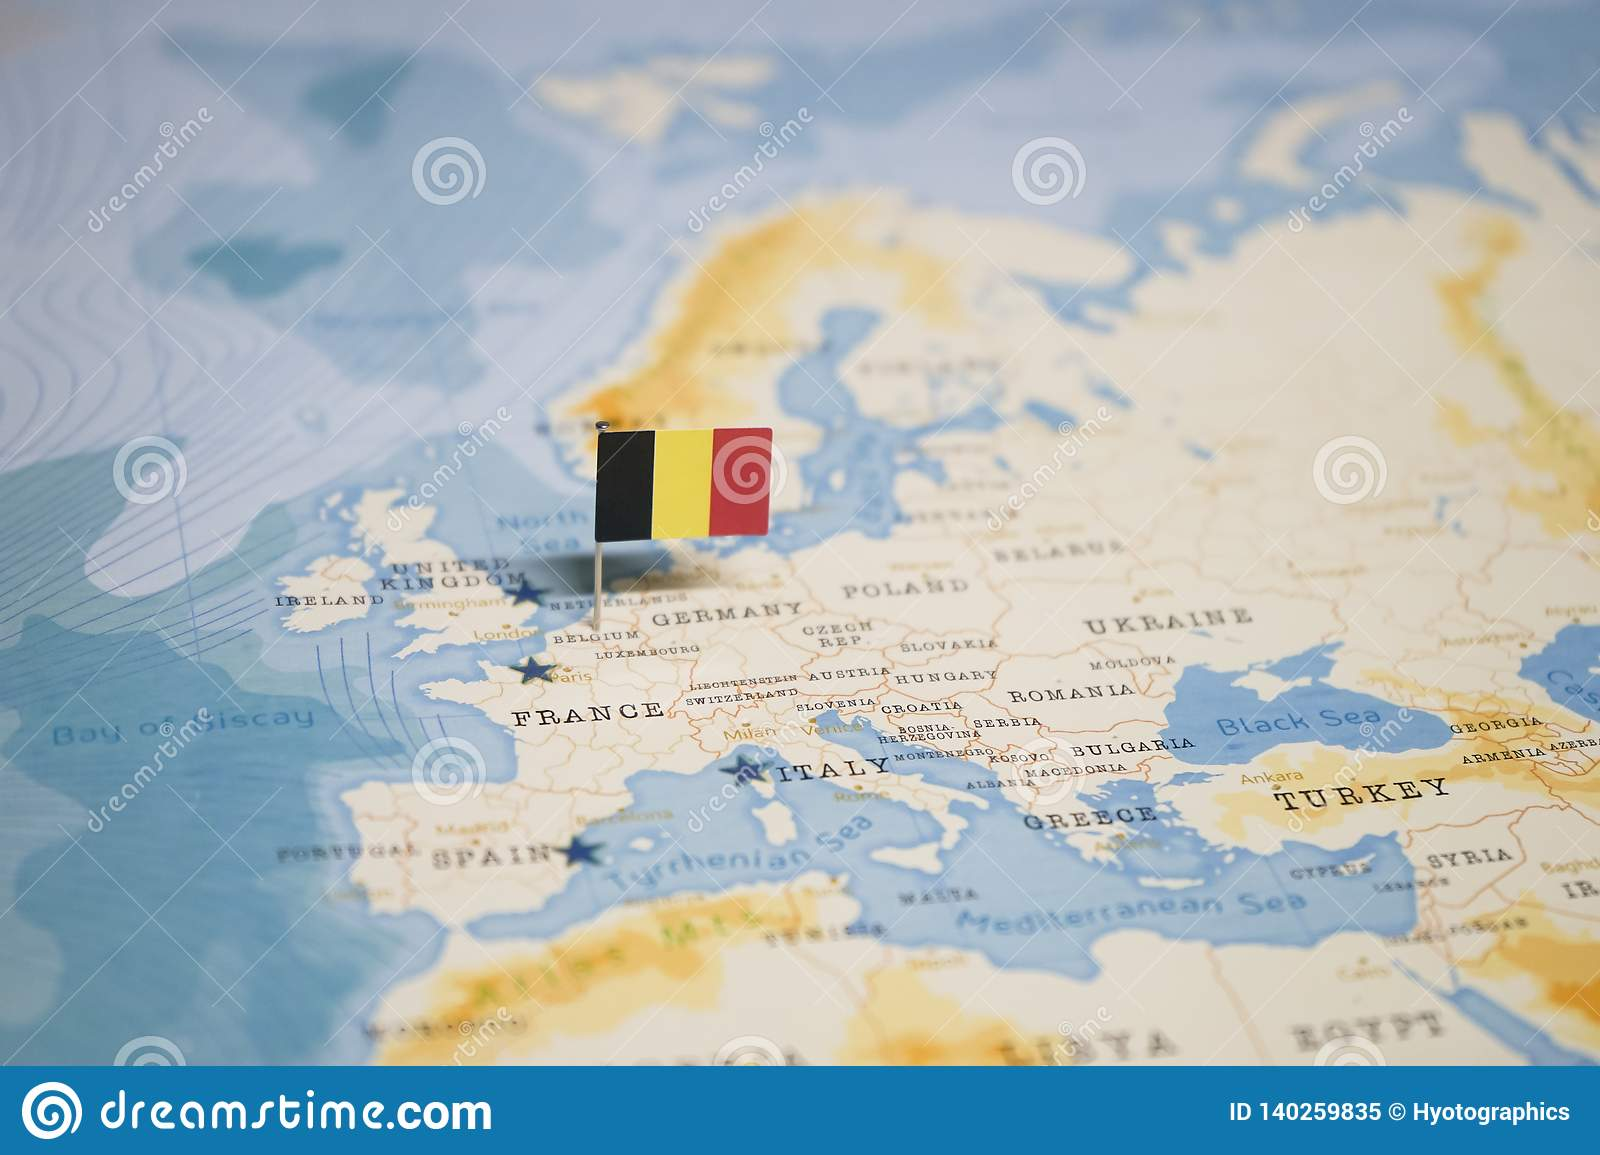 The Flag Of Belgium In The World Map Stock Image - Image of ...